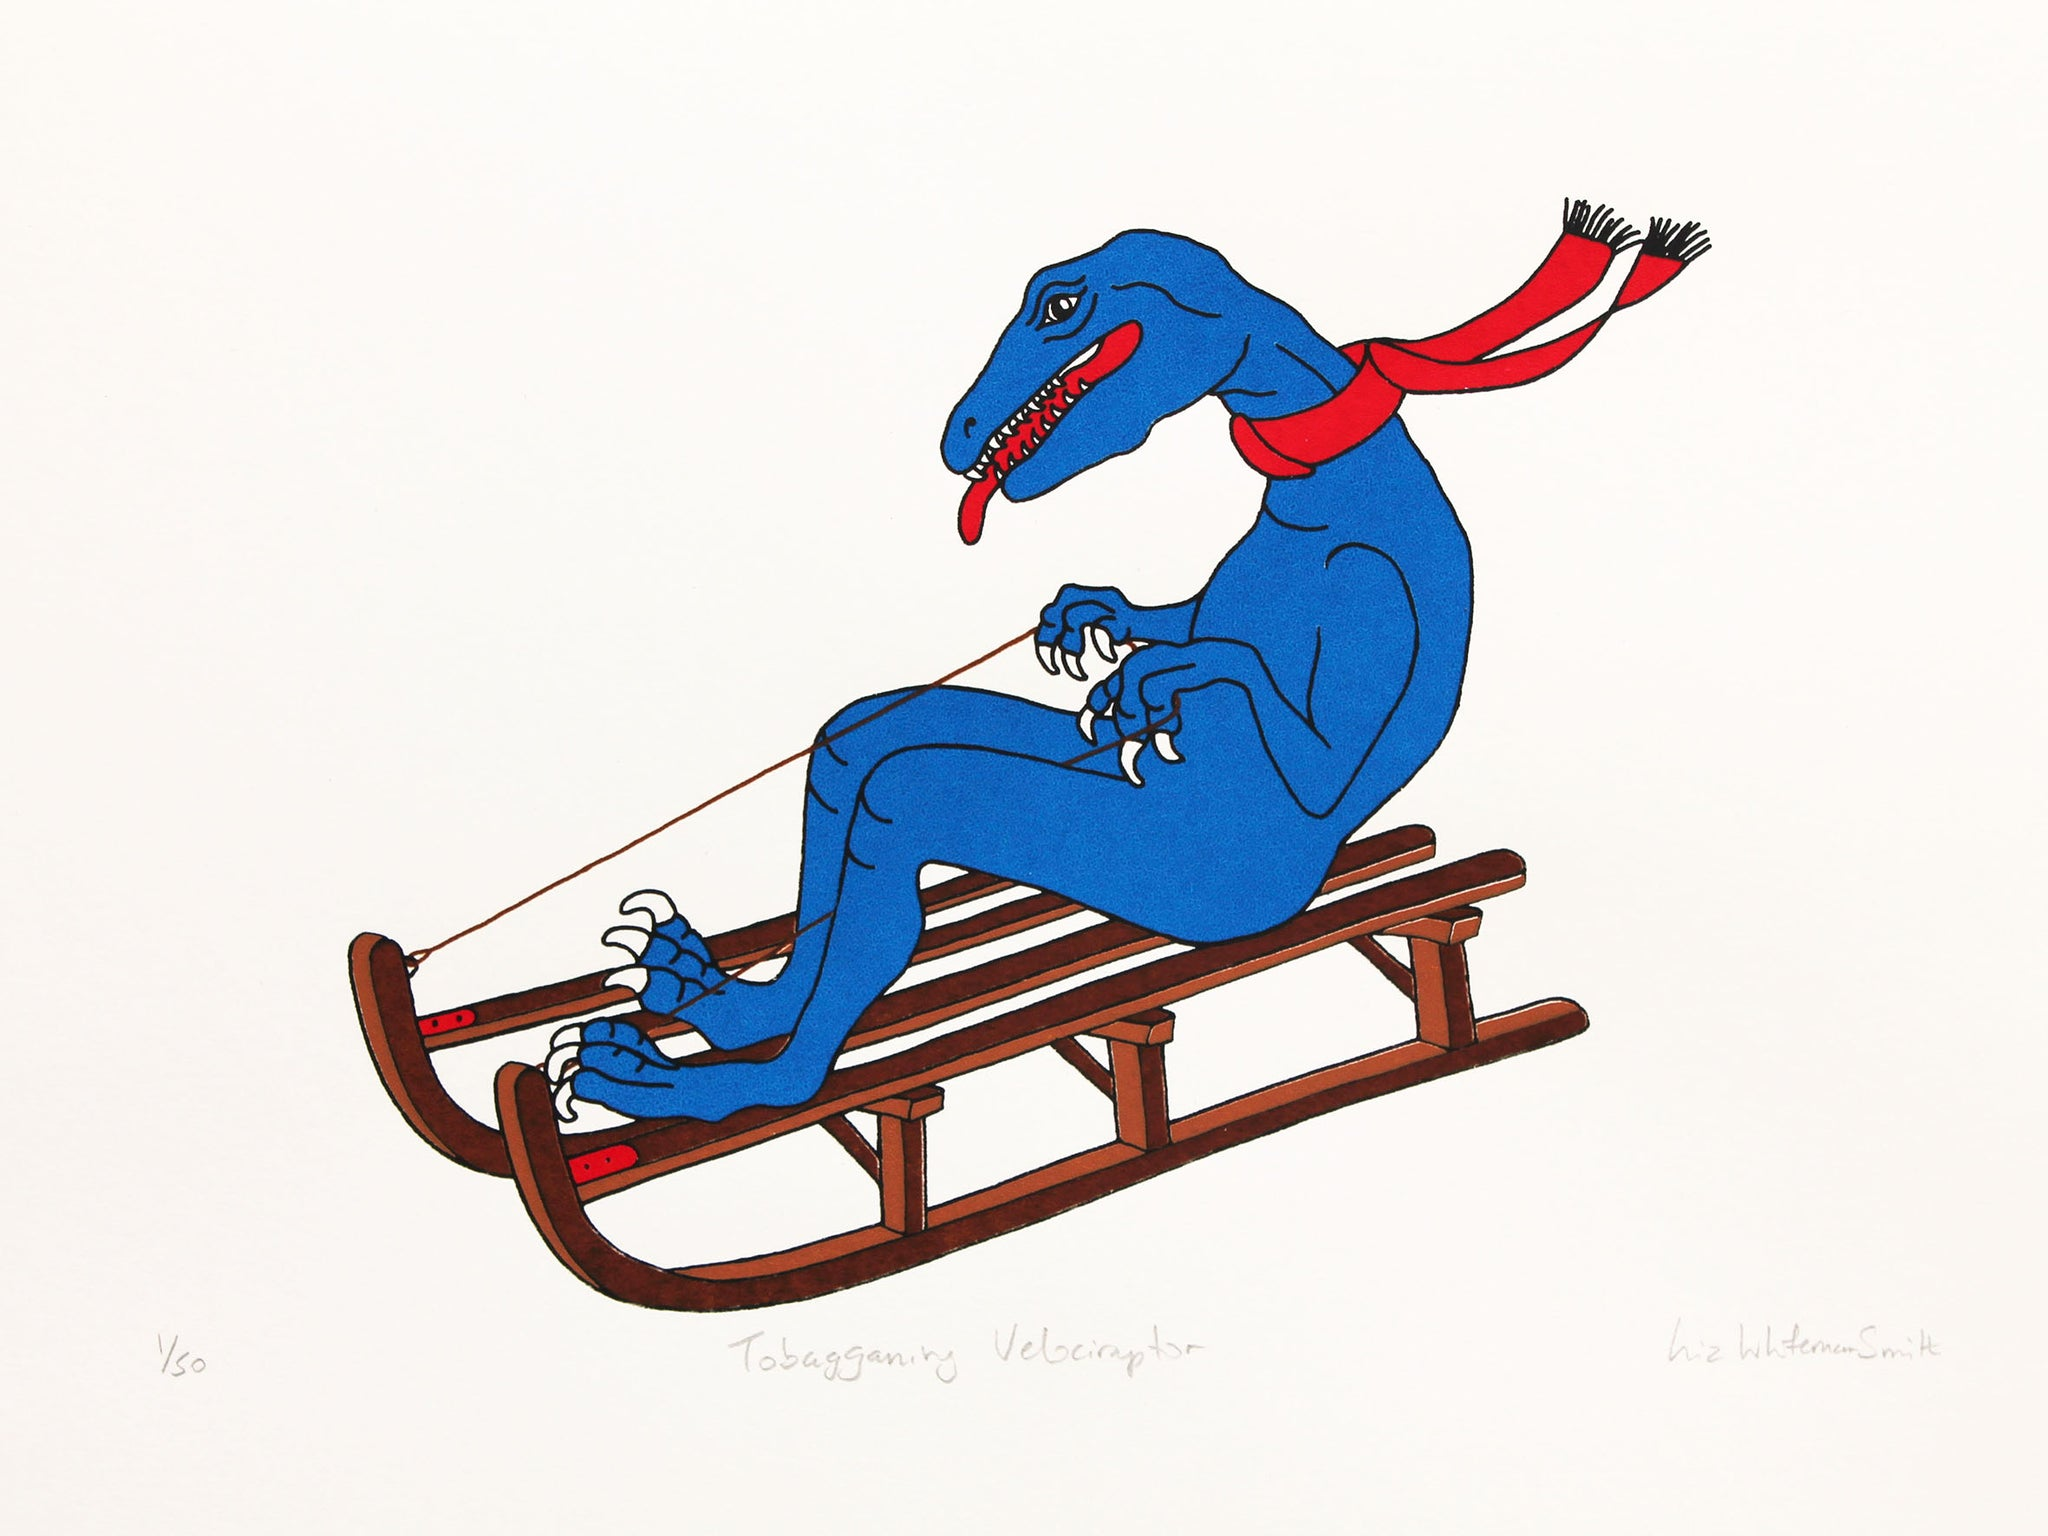 Blue velociraptor with a red scarf tobogganing